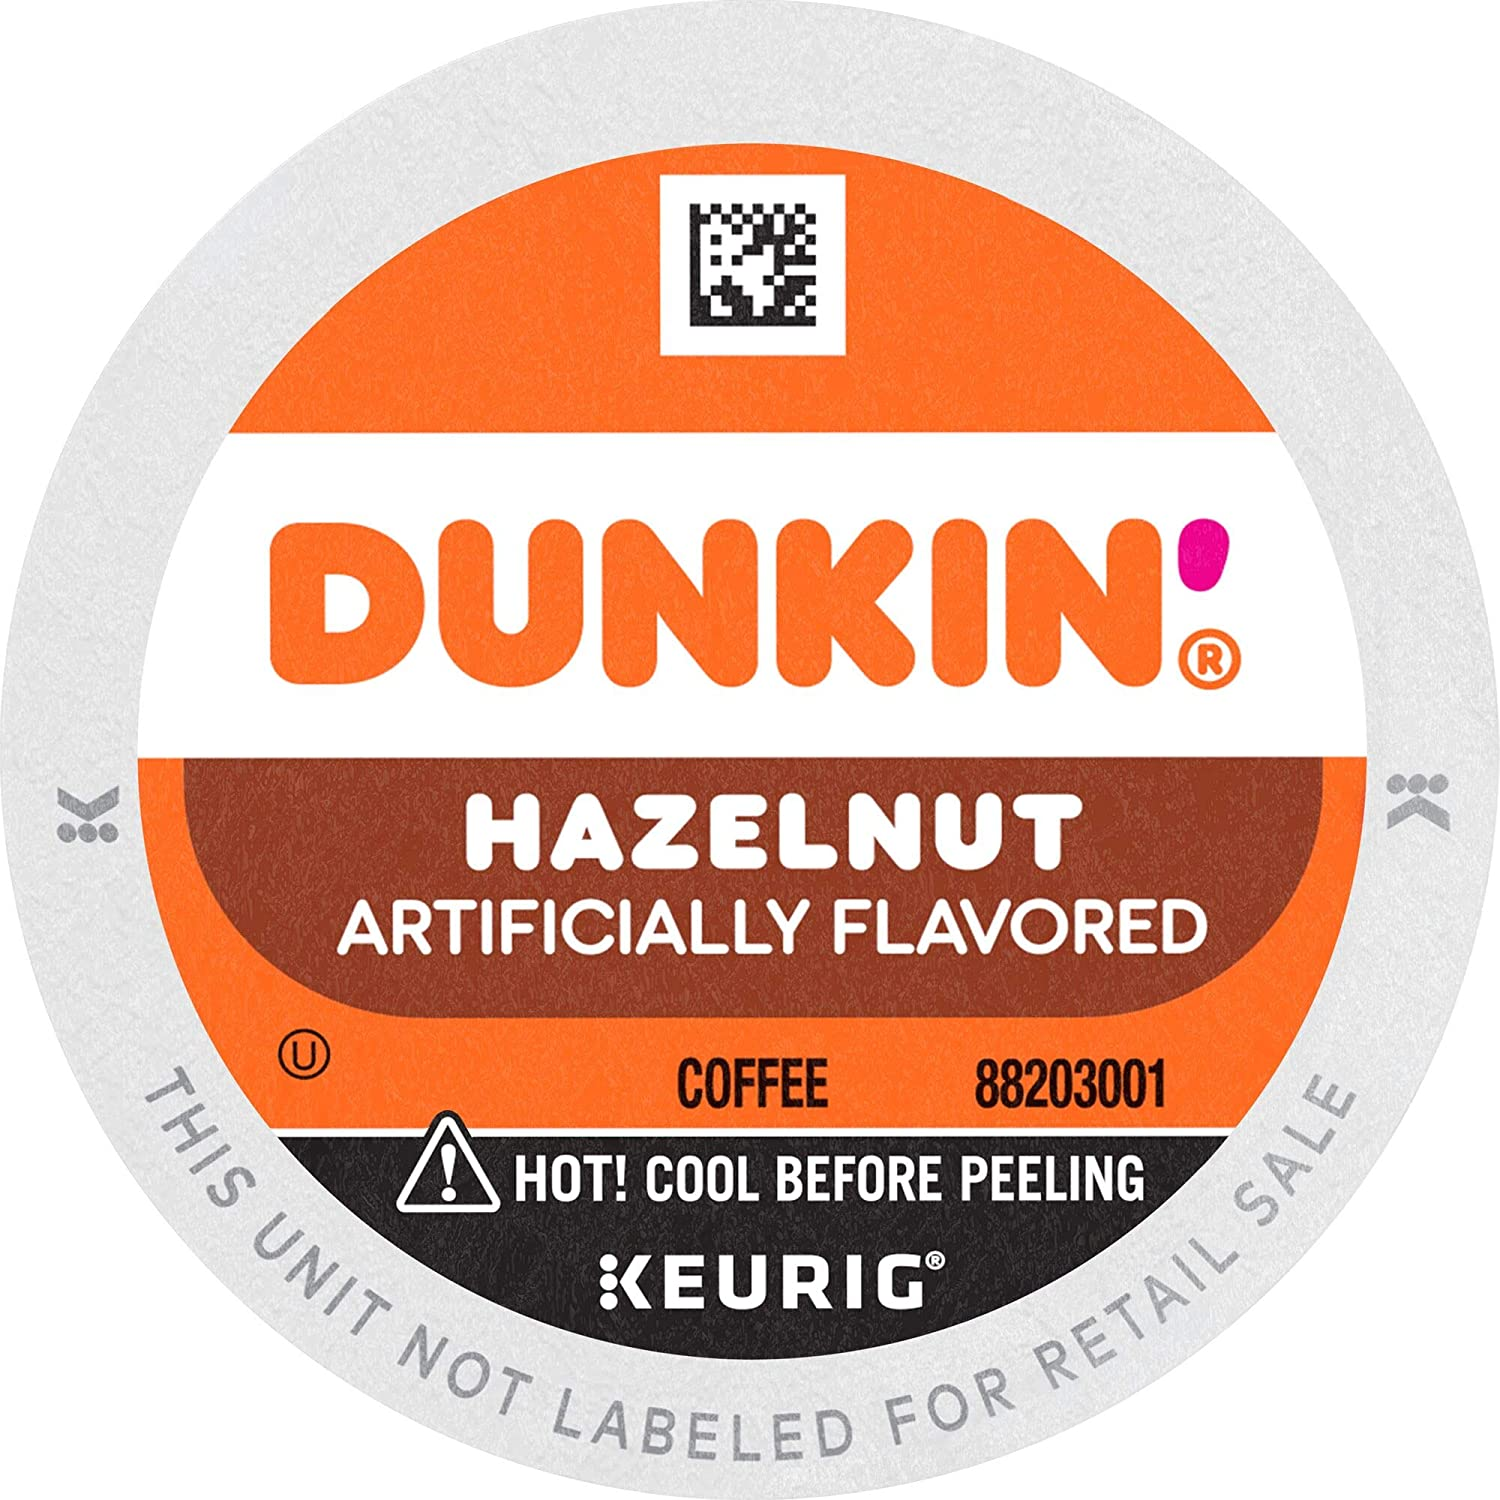 New Orleans Regular store Mall Dunkin' Donuts Coffee Hazelnut Flavored Cup Pods for K